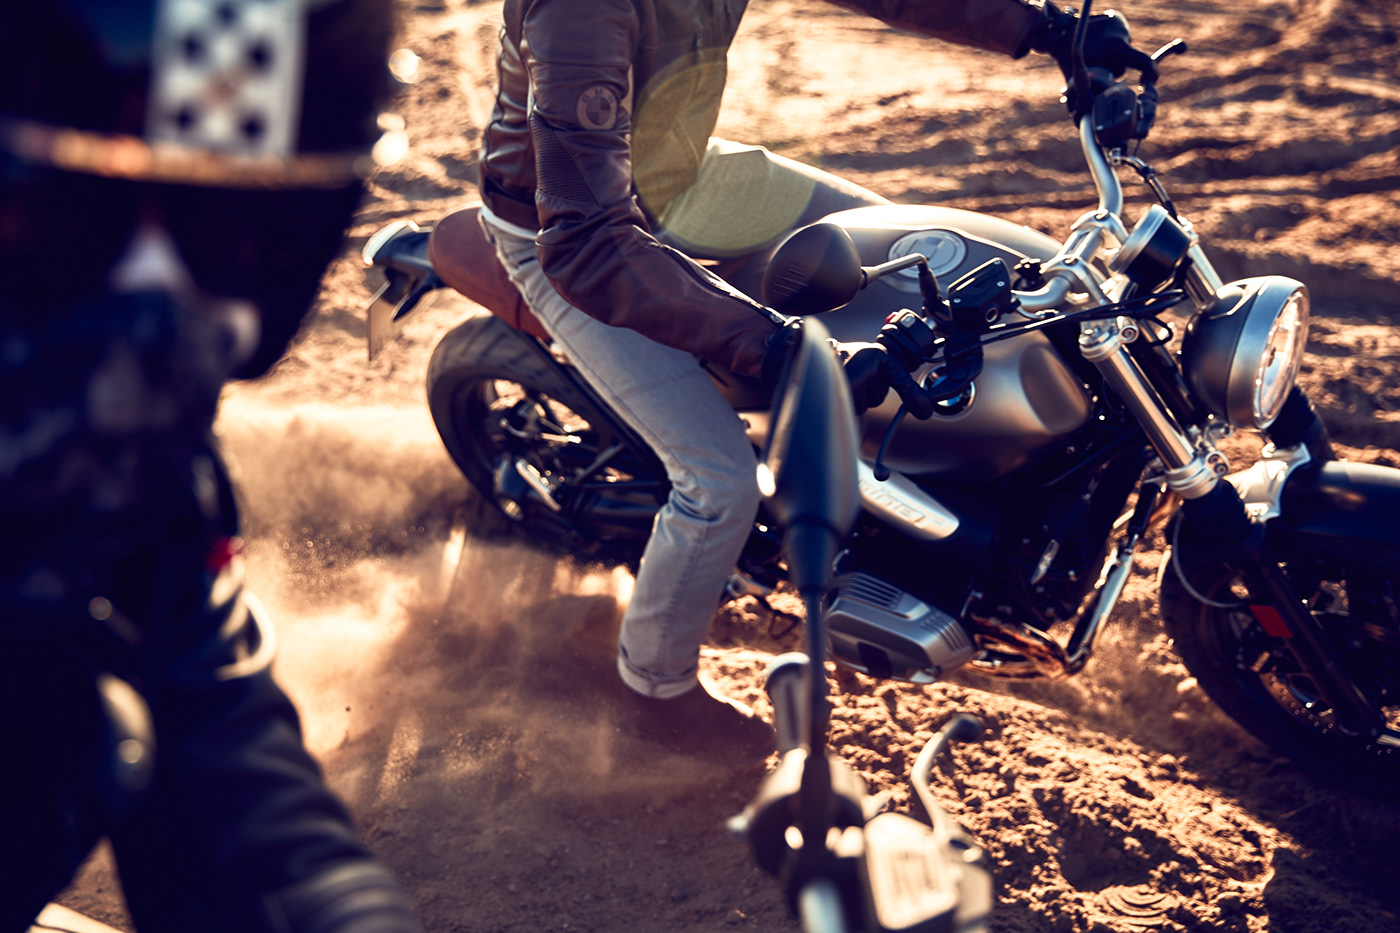 BMW Motorrad | Photo by Daniel Cramer